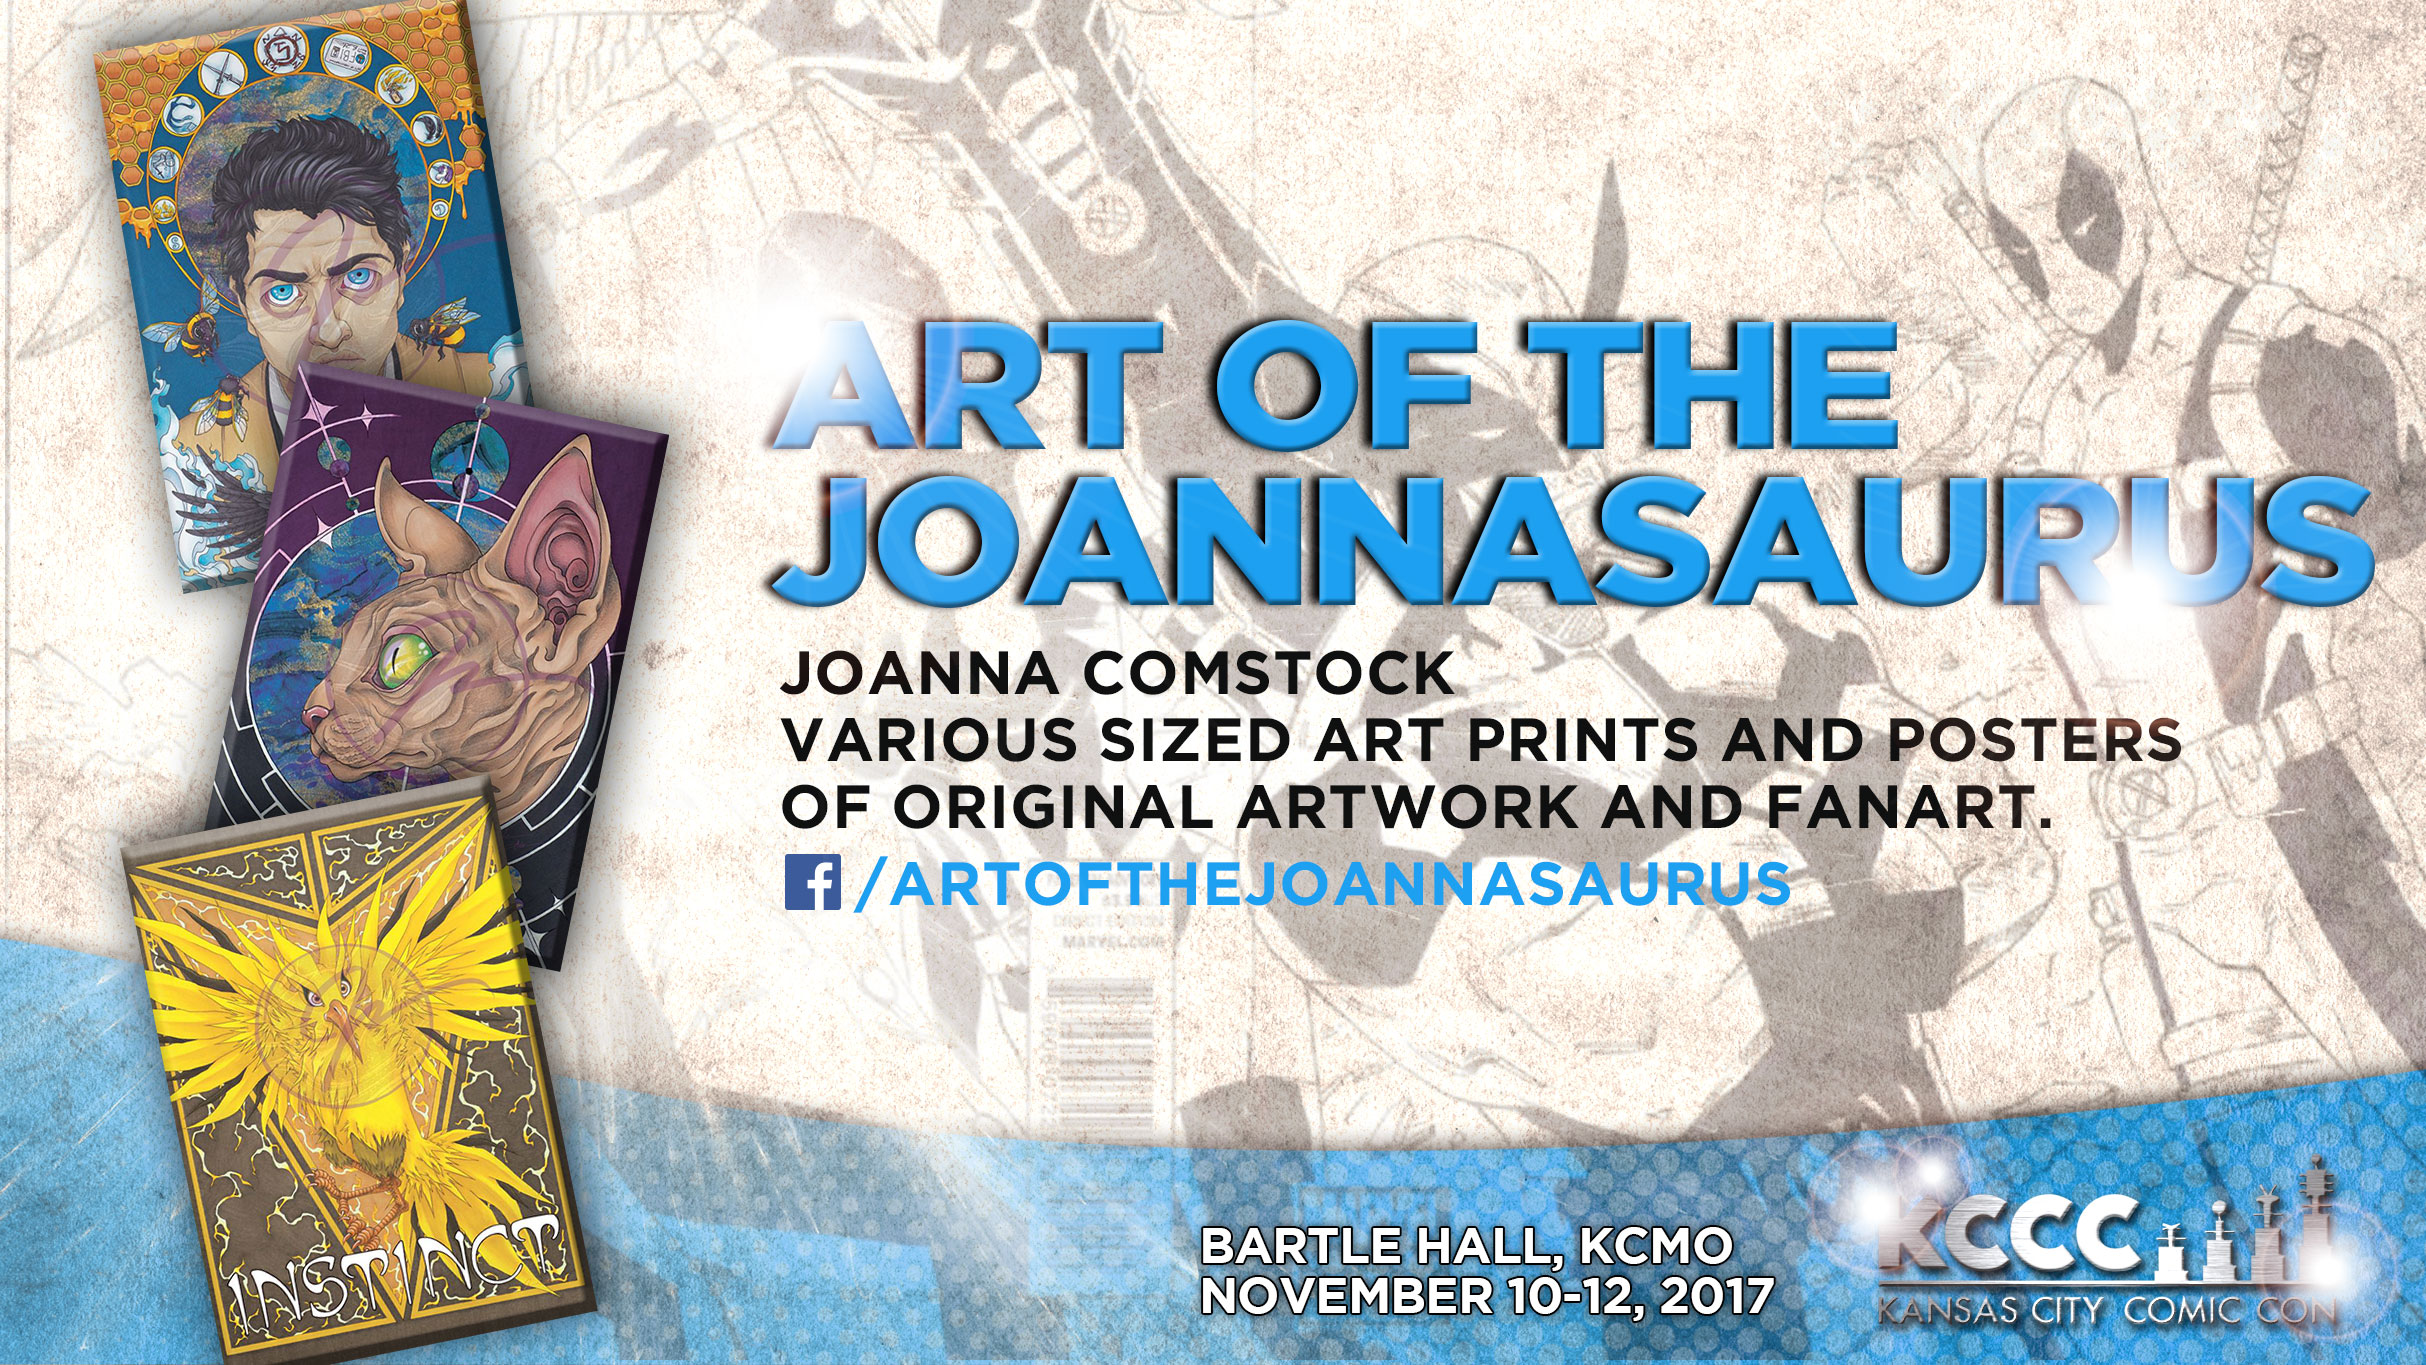 KCCC_ANNOUNCEMENT_Sketch_JoannaComstock.jpg